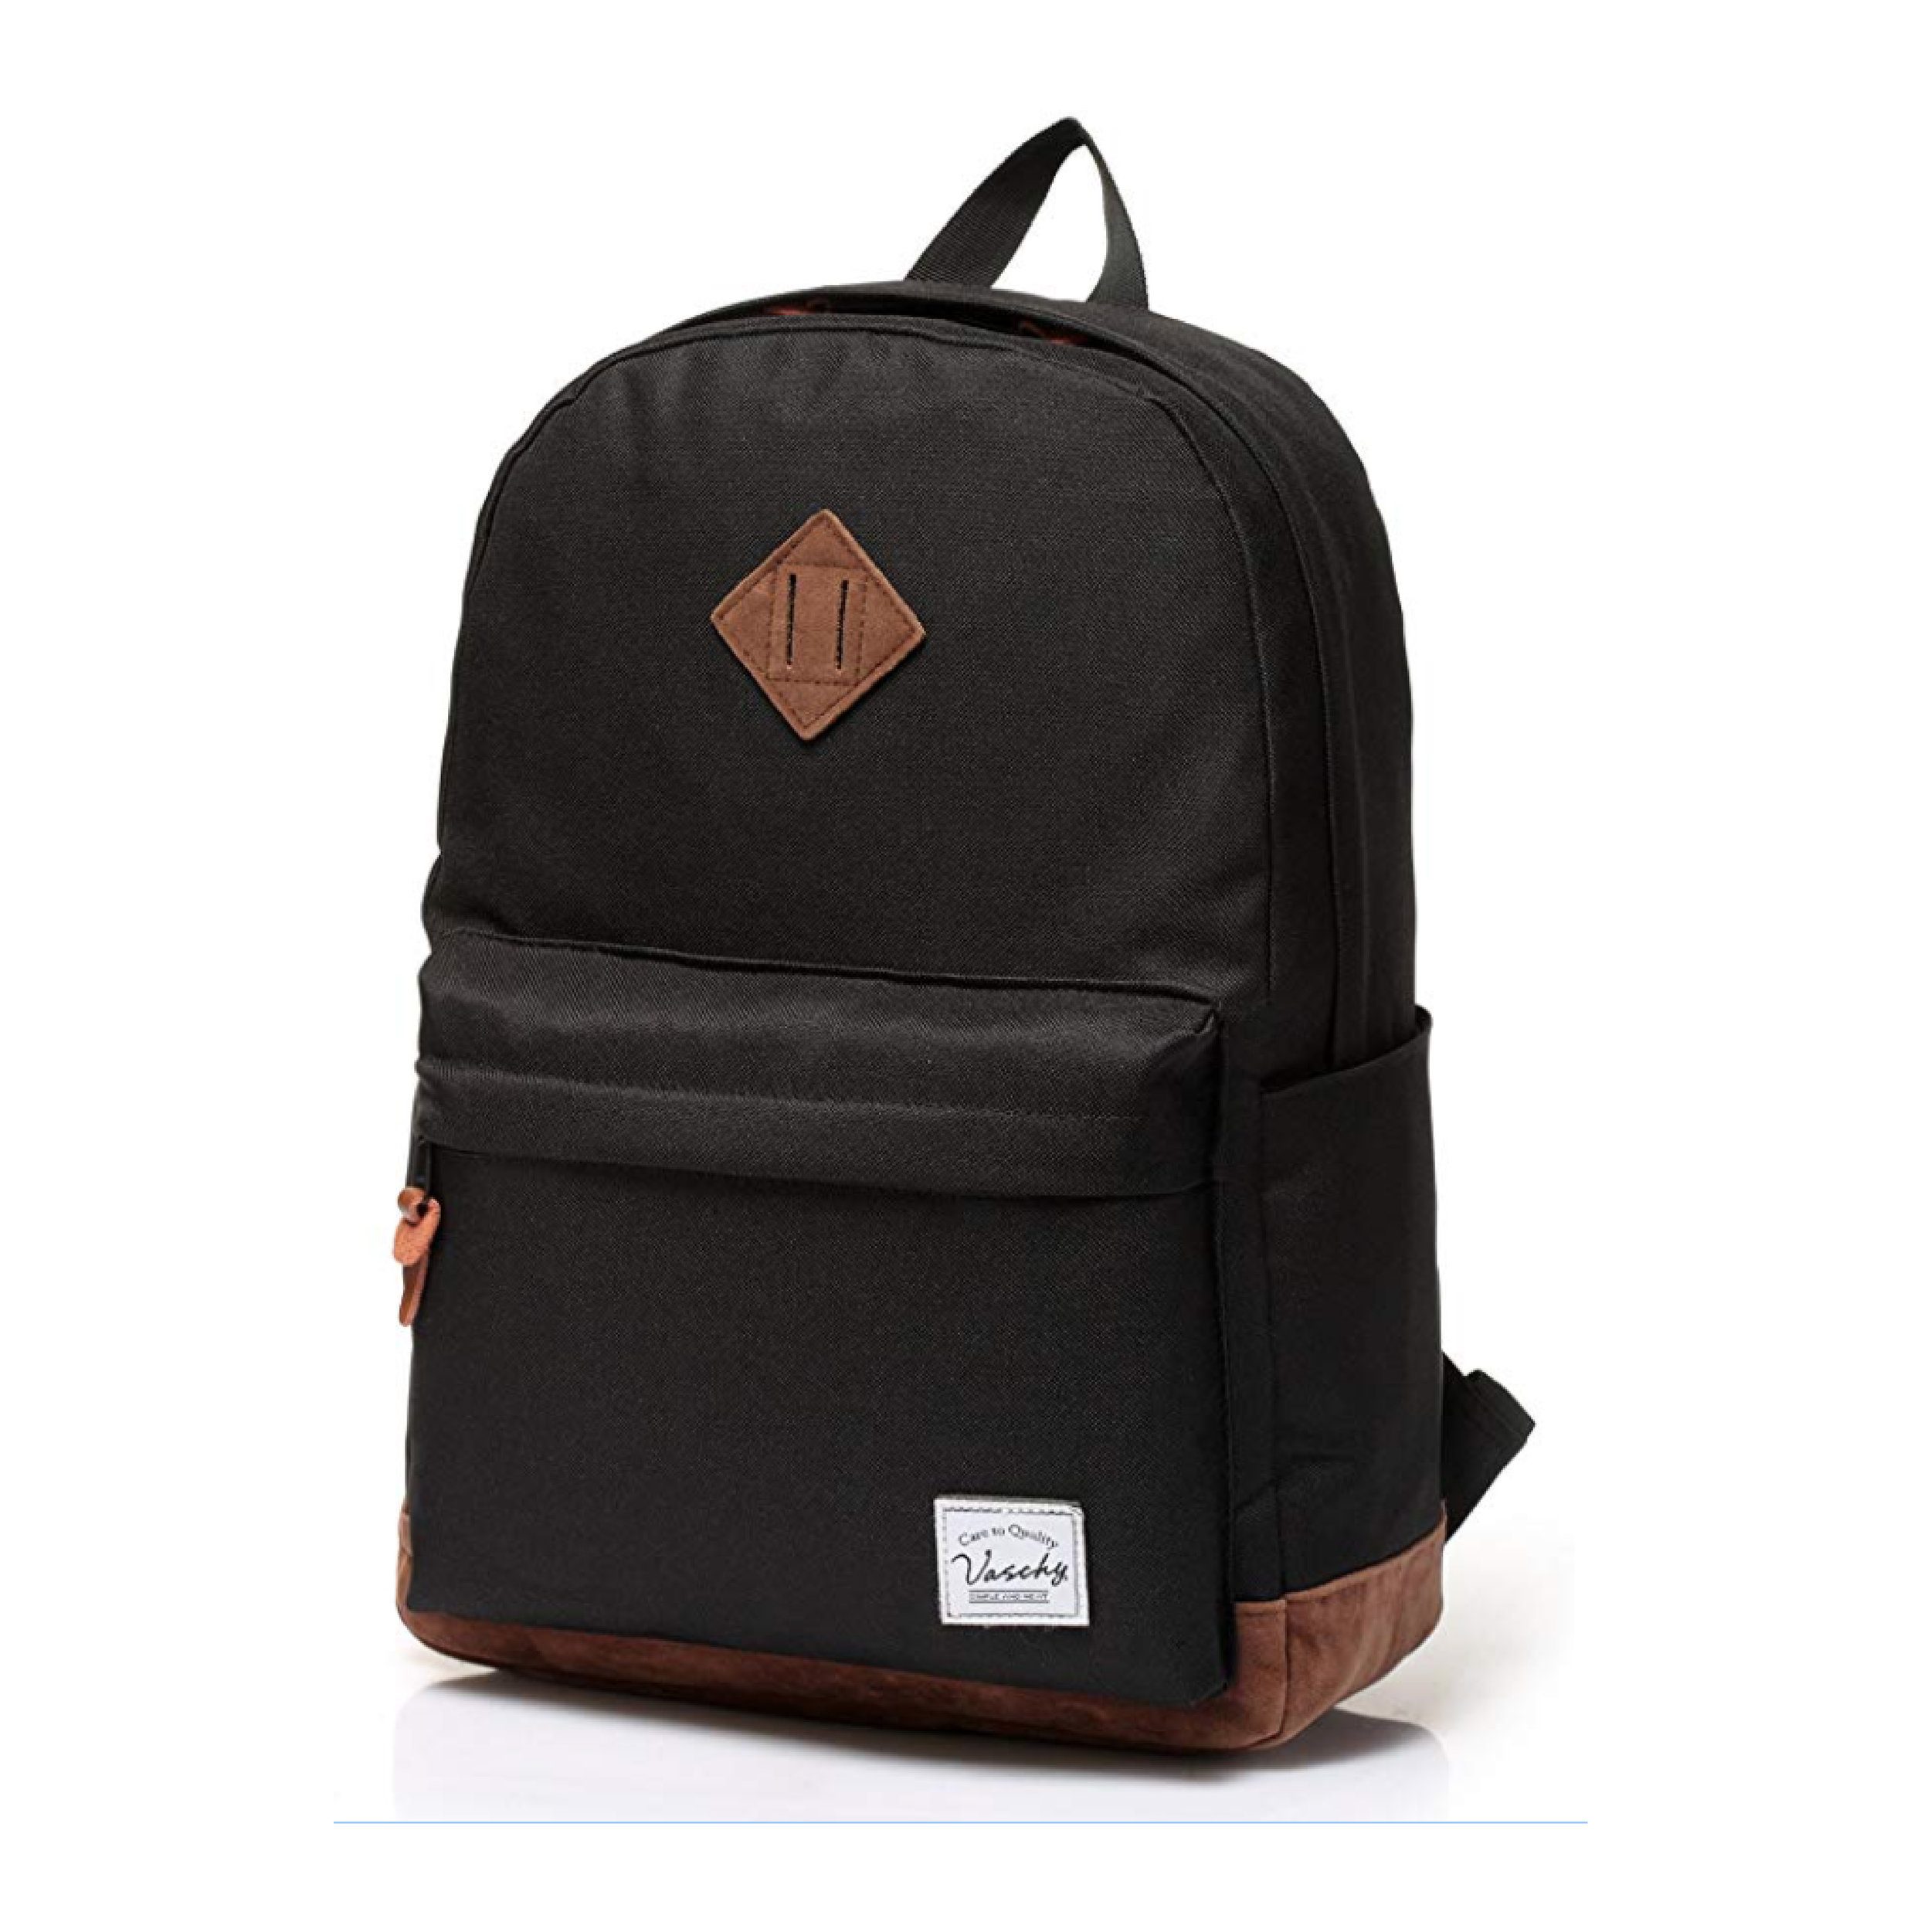 Parkland - These Parkland backpacks are on Amazon, great quality, good color options, cute design.